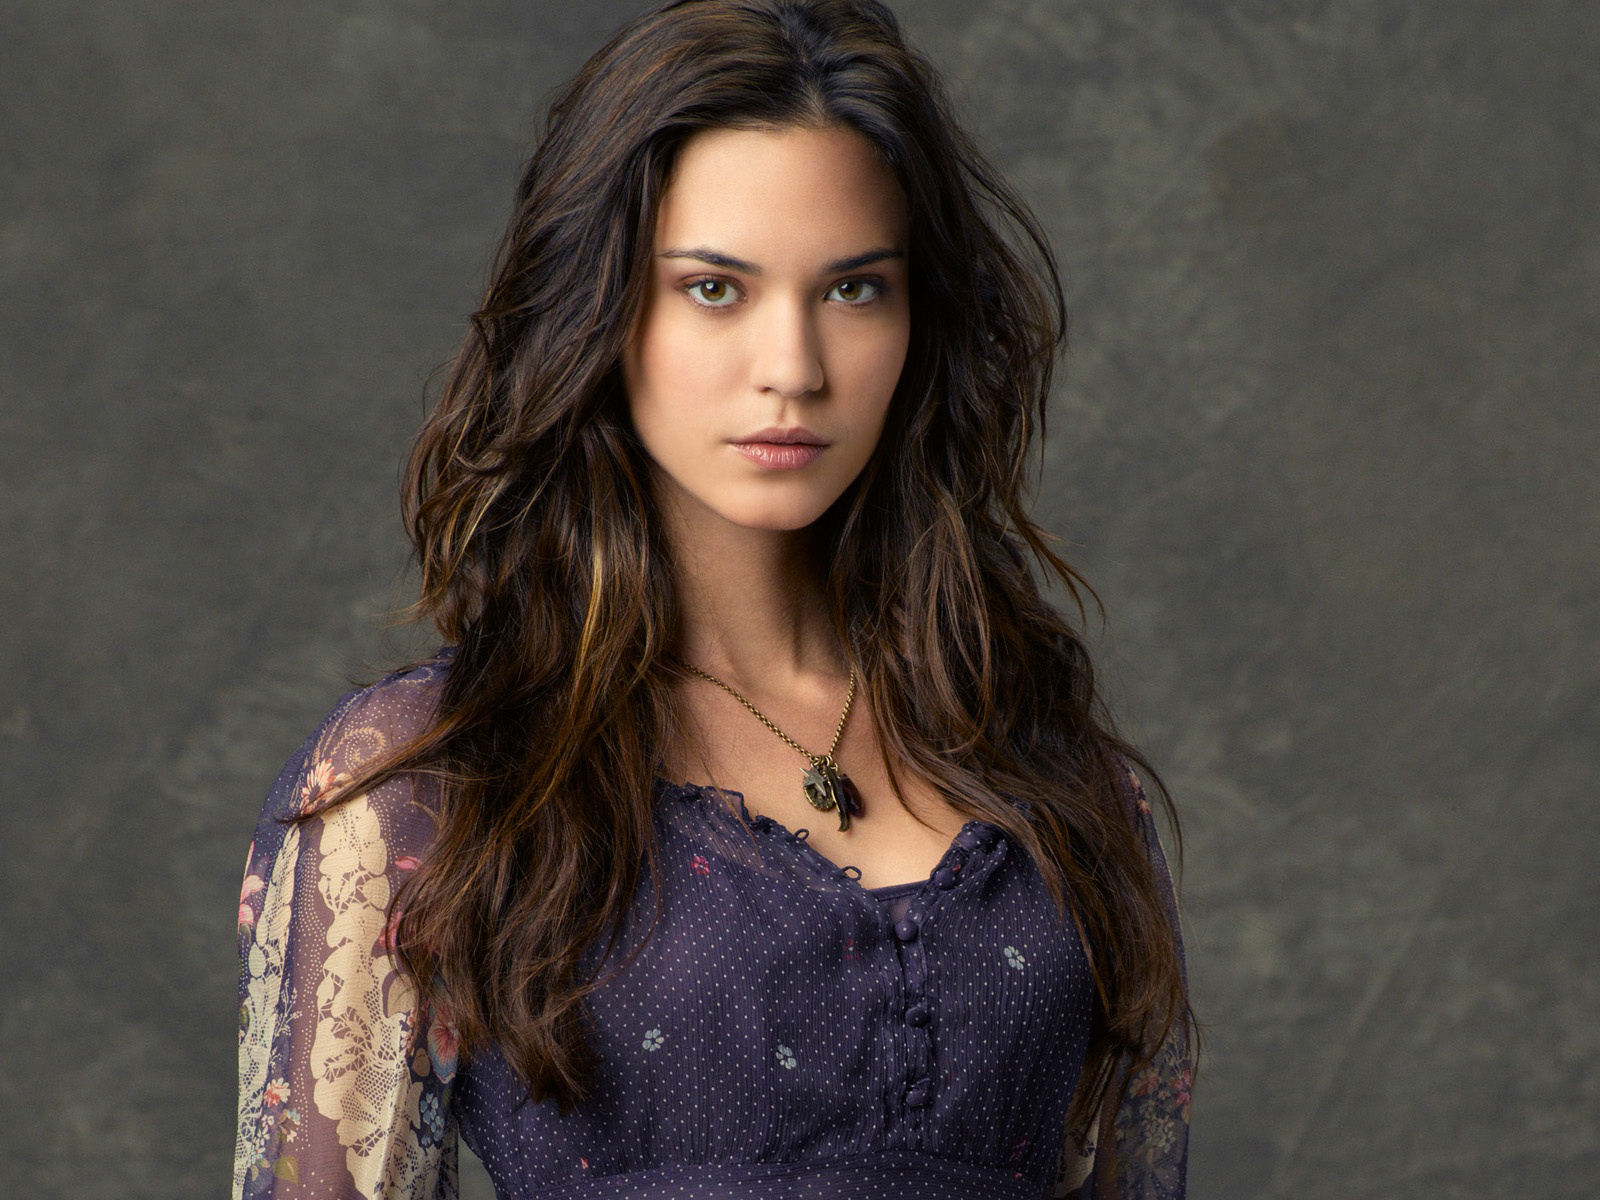 1600x1200 - Odette Annable Wallpapers 29